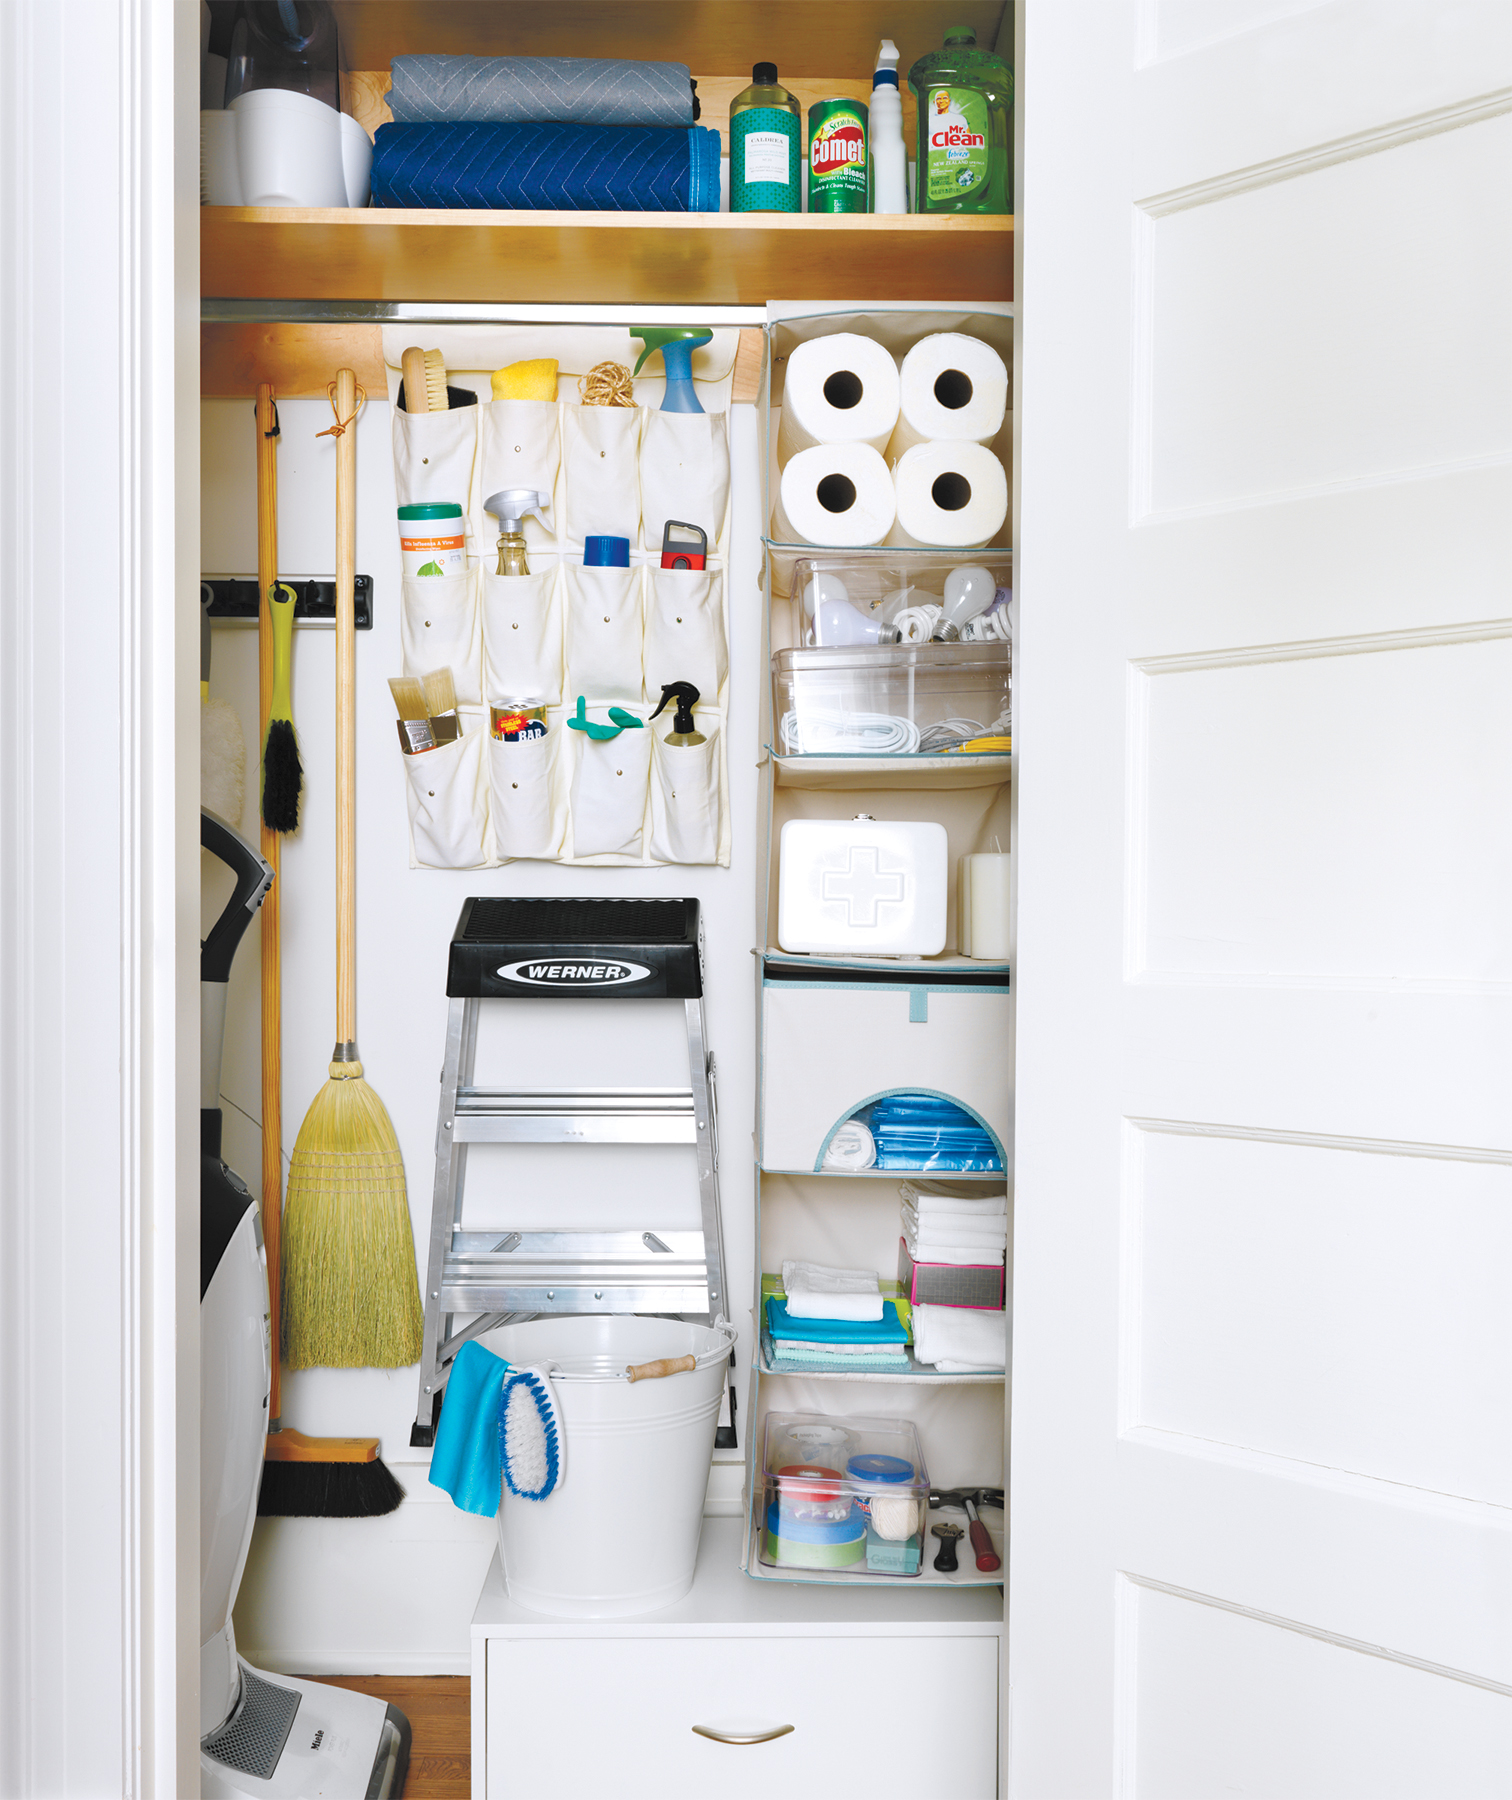 Hanging cleaning supplies